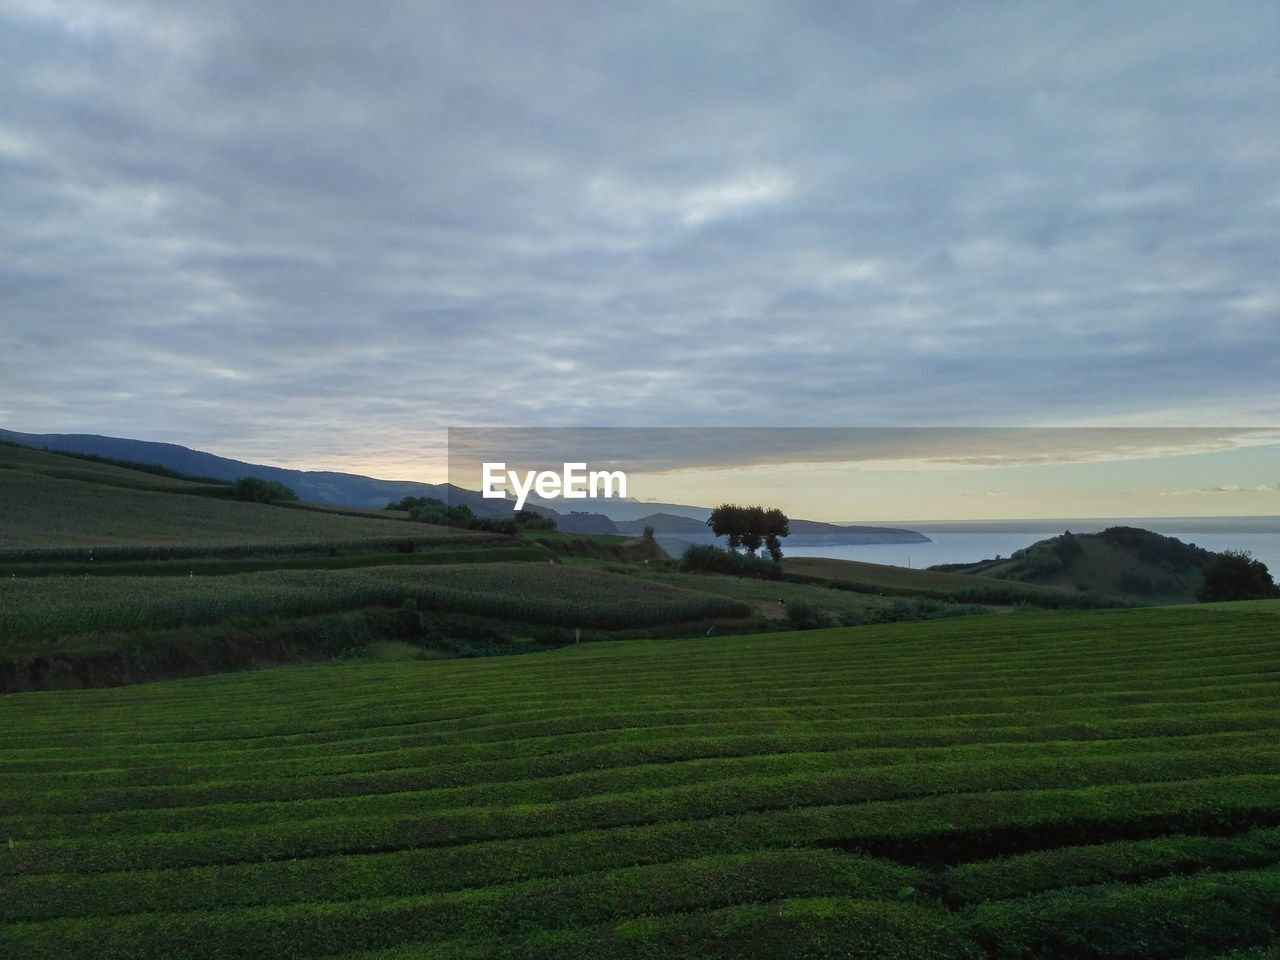 sky, scenics - nature, cloud - sky, tranquil scene, tranquility, environment, landscape, beauty in nature, land, field, agriculture, rural scene, plant, green color, nature, no people, growth, non-urban scene, grass, mountain, tea crop, plantation, rolling landscape